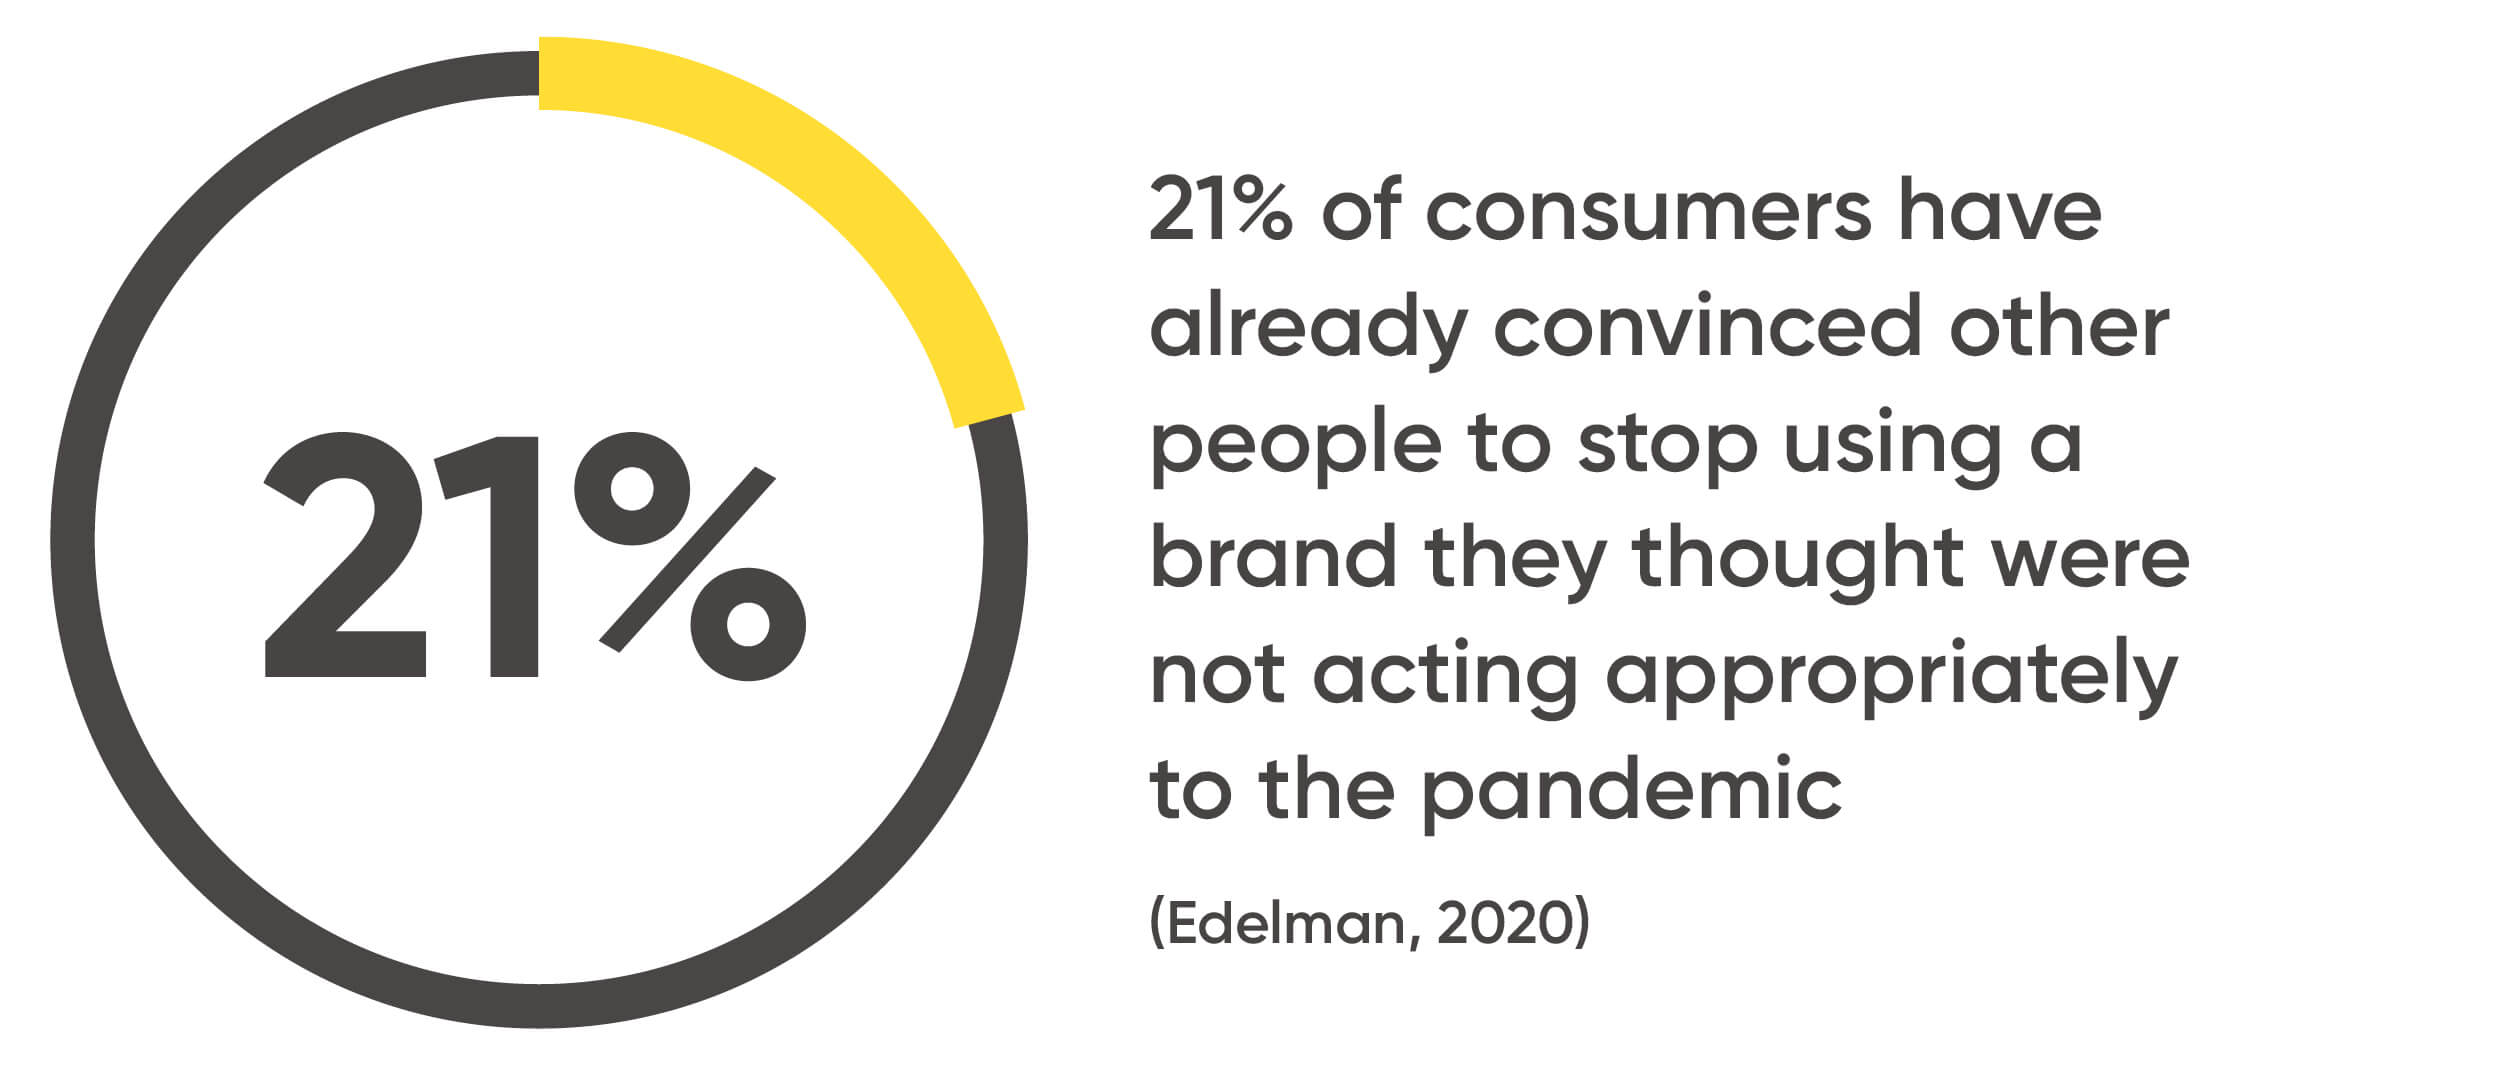 21% of consumers